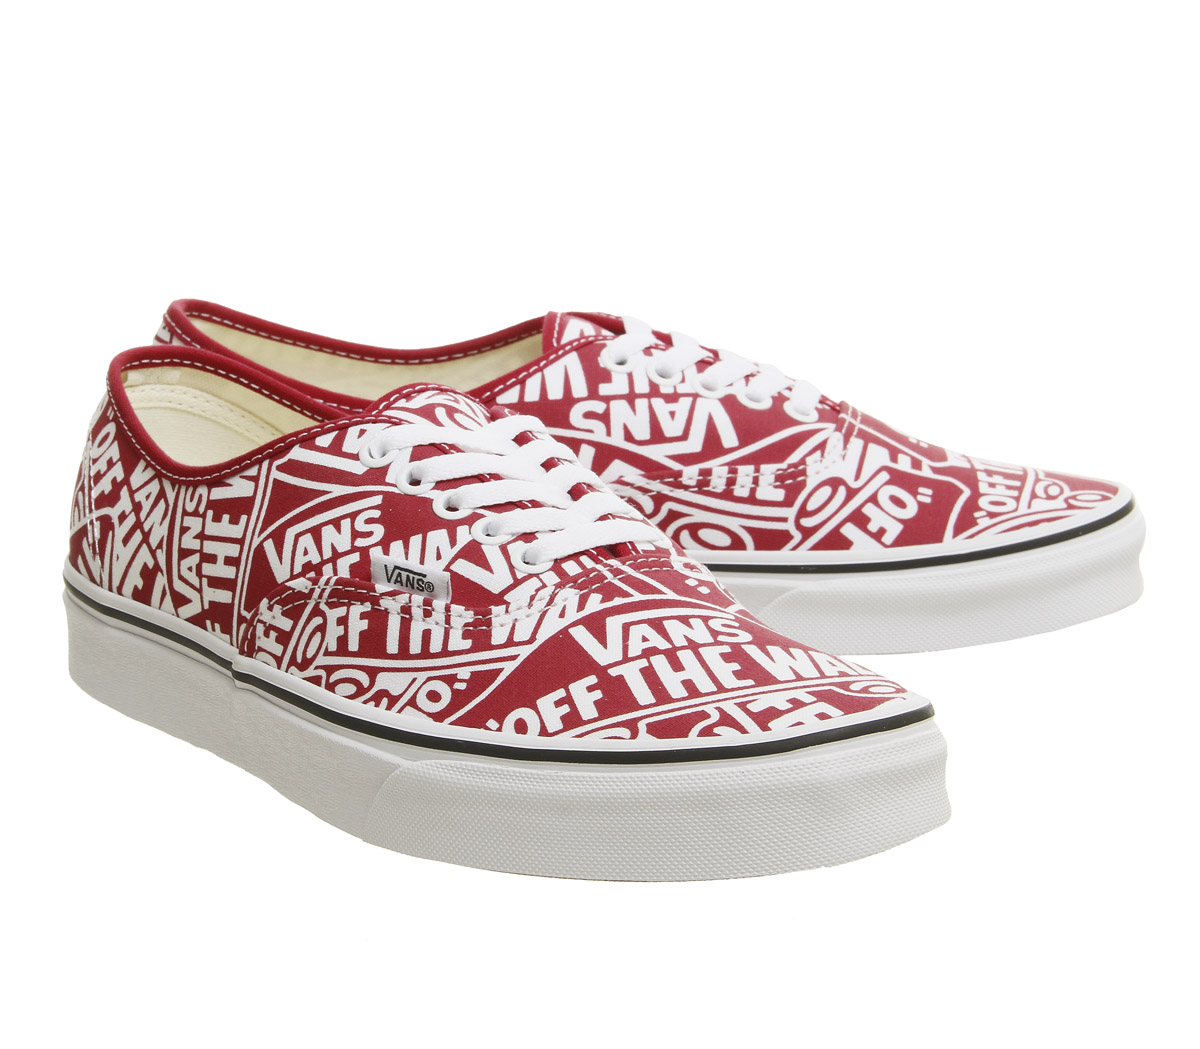 2ca684dc1d Sentinel Thumbnail 7. Sentinel Vans Authentic Trainers Red True White  Repeat Otw Trainers Shoes. Sentinel Thumbnail 8